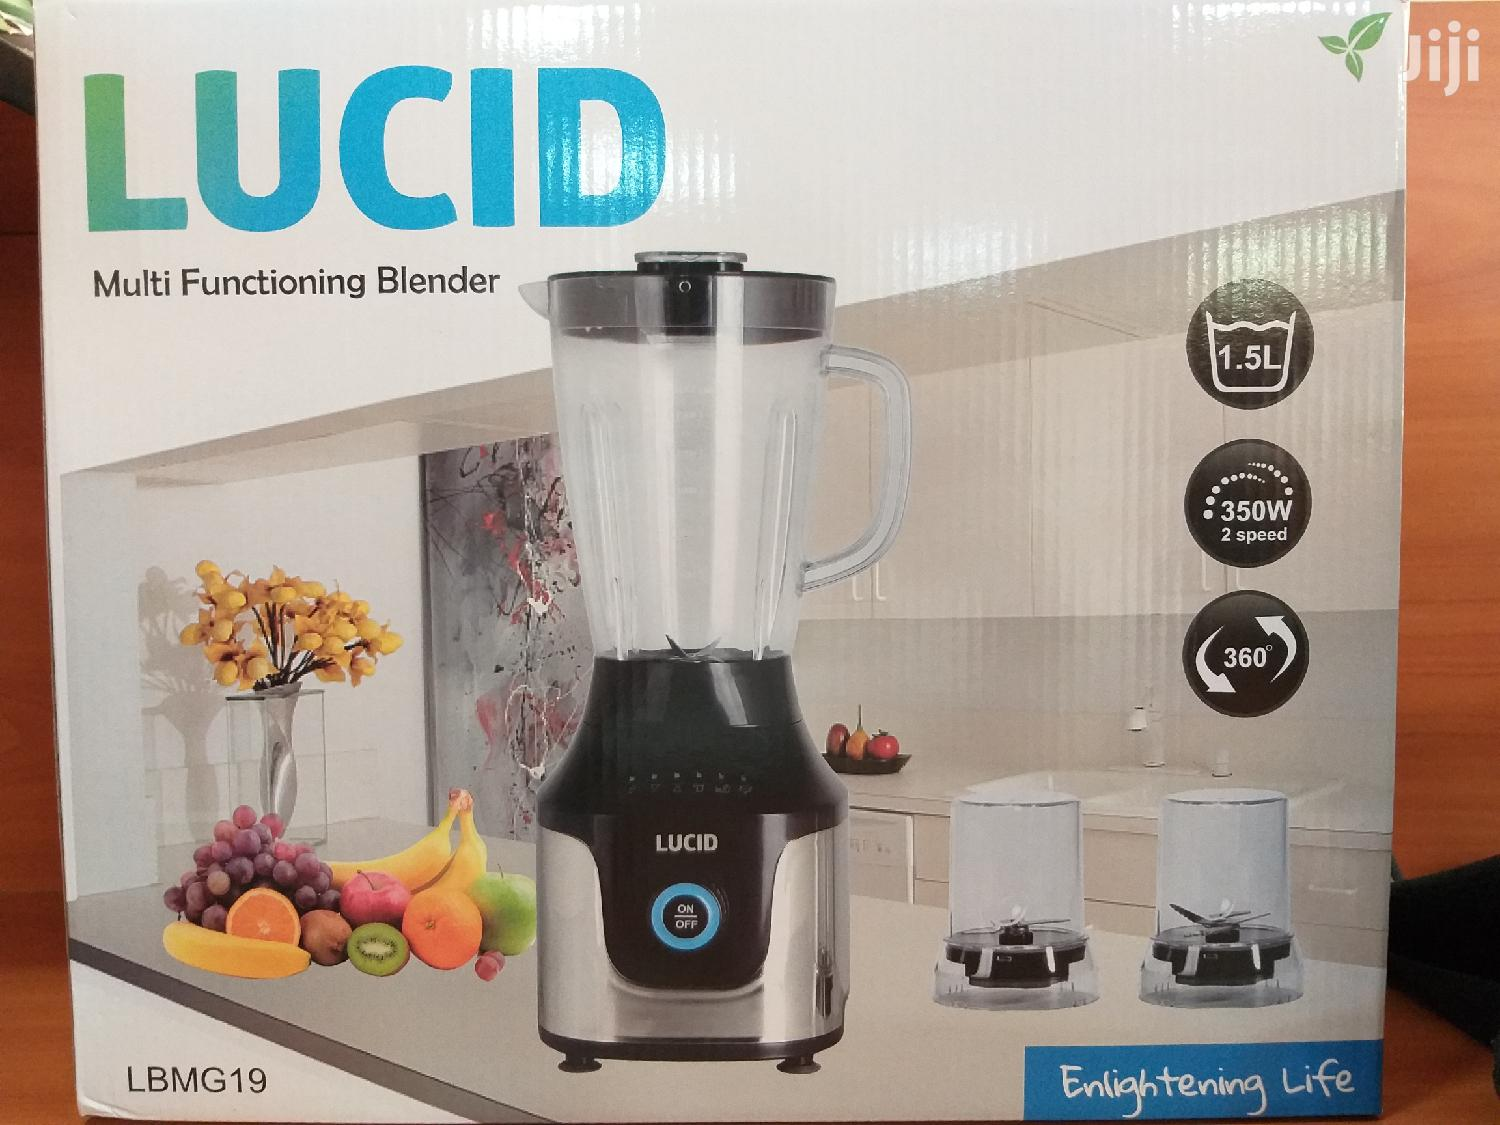 Lucid Multi Functioning Blender